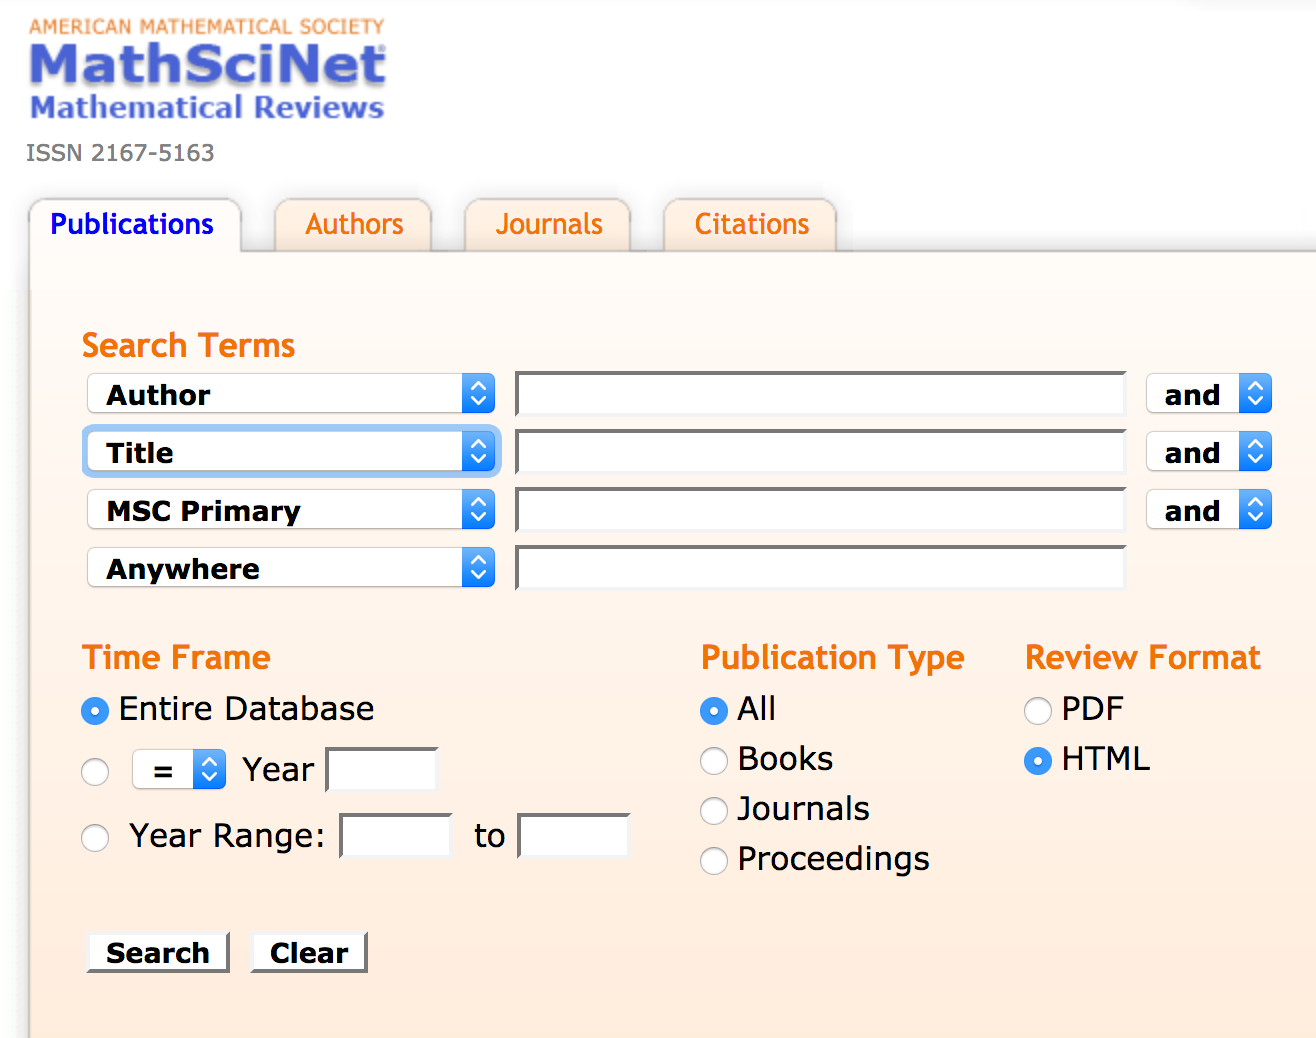 MathSciNet publications search with four search fields all with drop down menus to the left of the fields with author, title, MSC Primary, and anywhere selected in them, and drop downs to the right of the first three with and selected in them. Underneath are the options to filter by time frame with entire database selected and Year and year range not selected or by Publication Type with All selected instead of books, journals or proceedings. There is also a heading of Review Format with the choice of HTML selected instead of PDF. Under all of this are search and clear buttons.